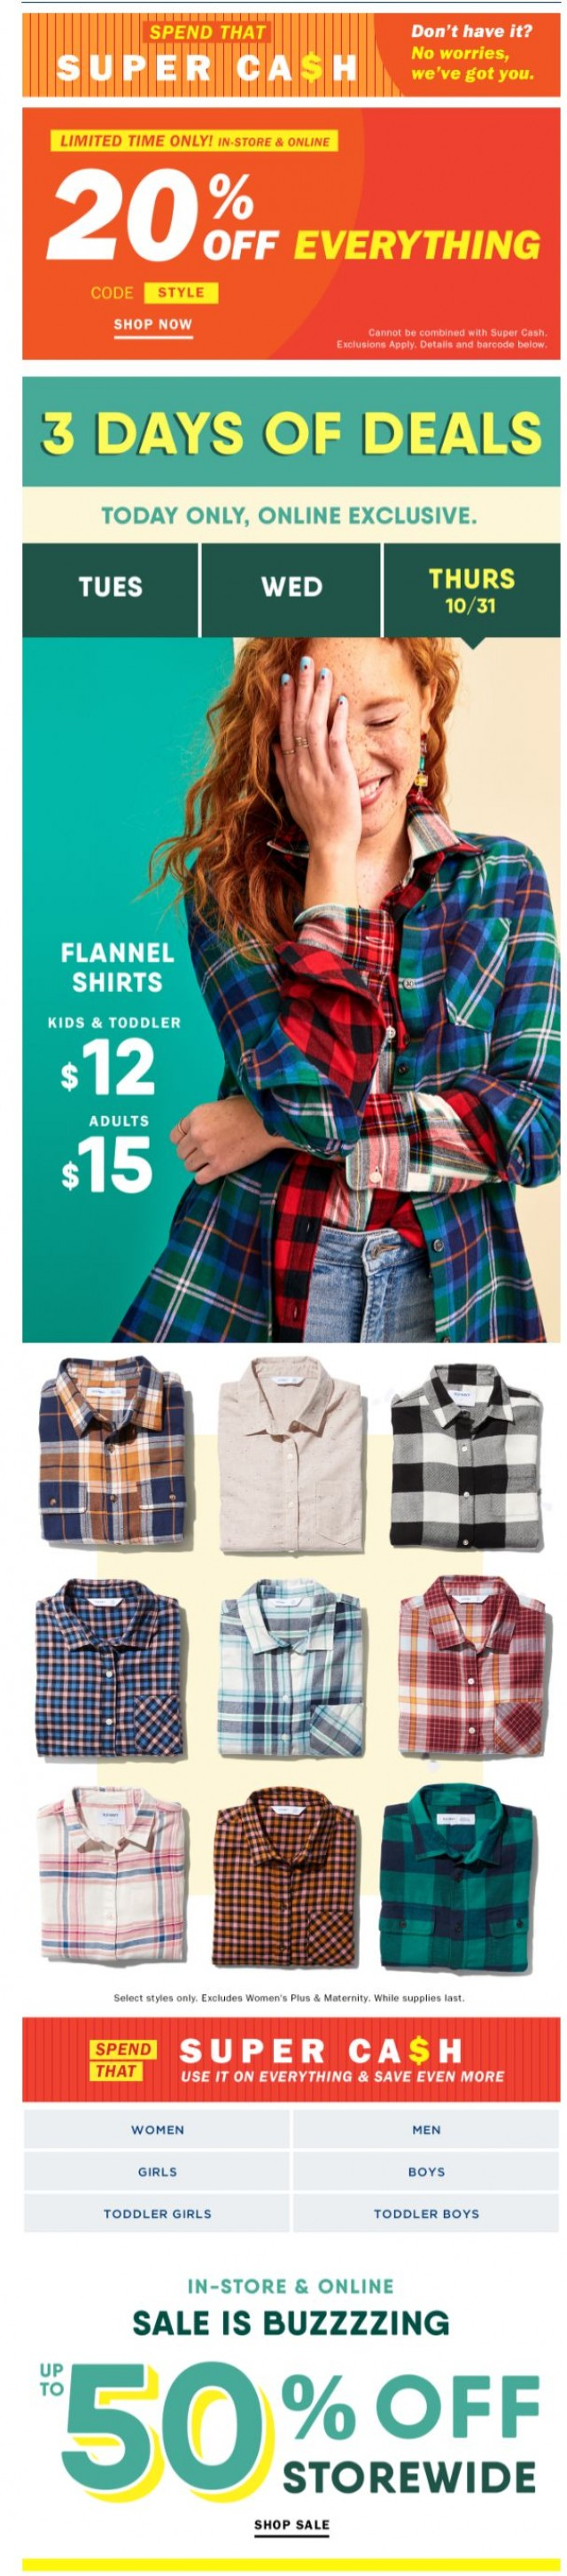 Coupon for: Old Navy - No jokes here: These $12 FLANNELS have your name on them